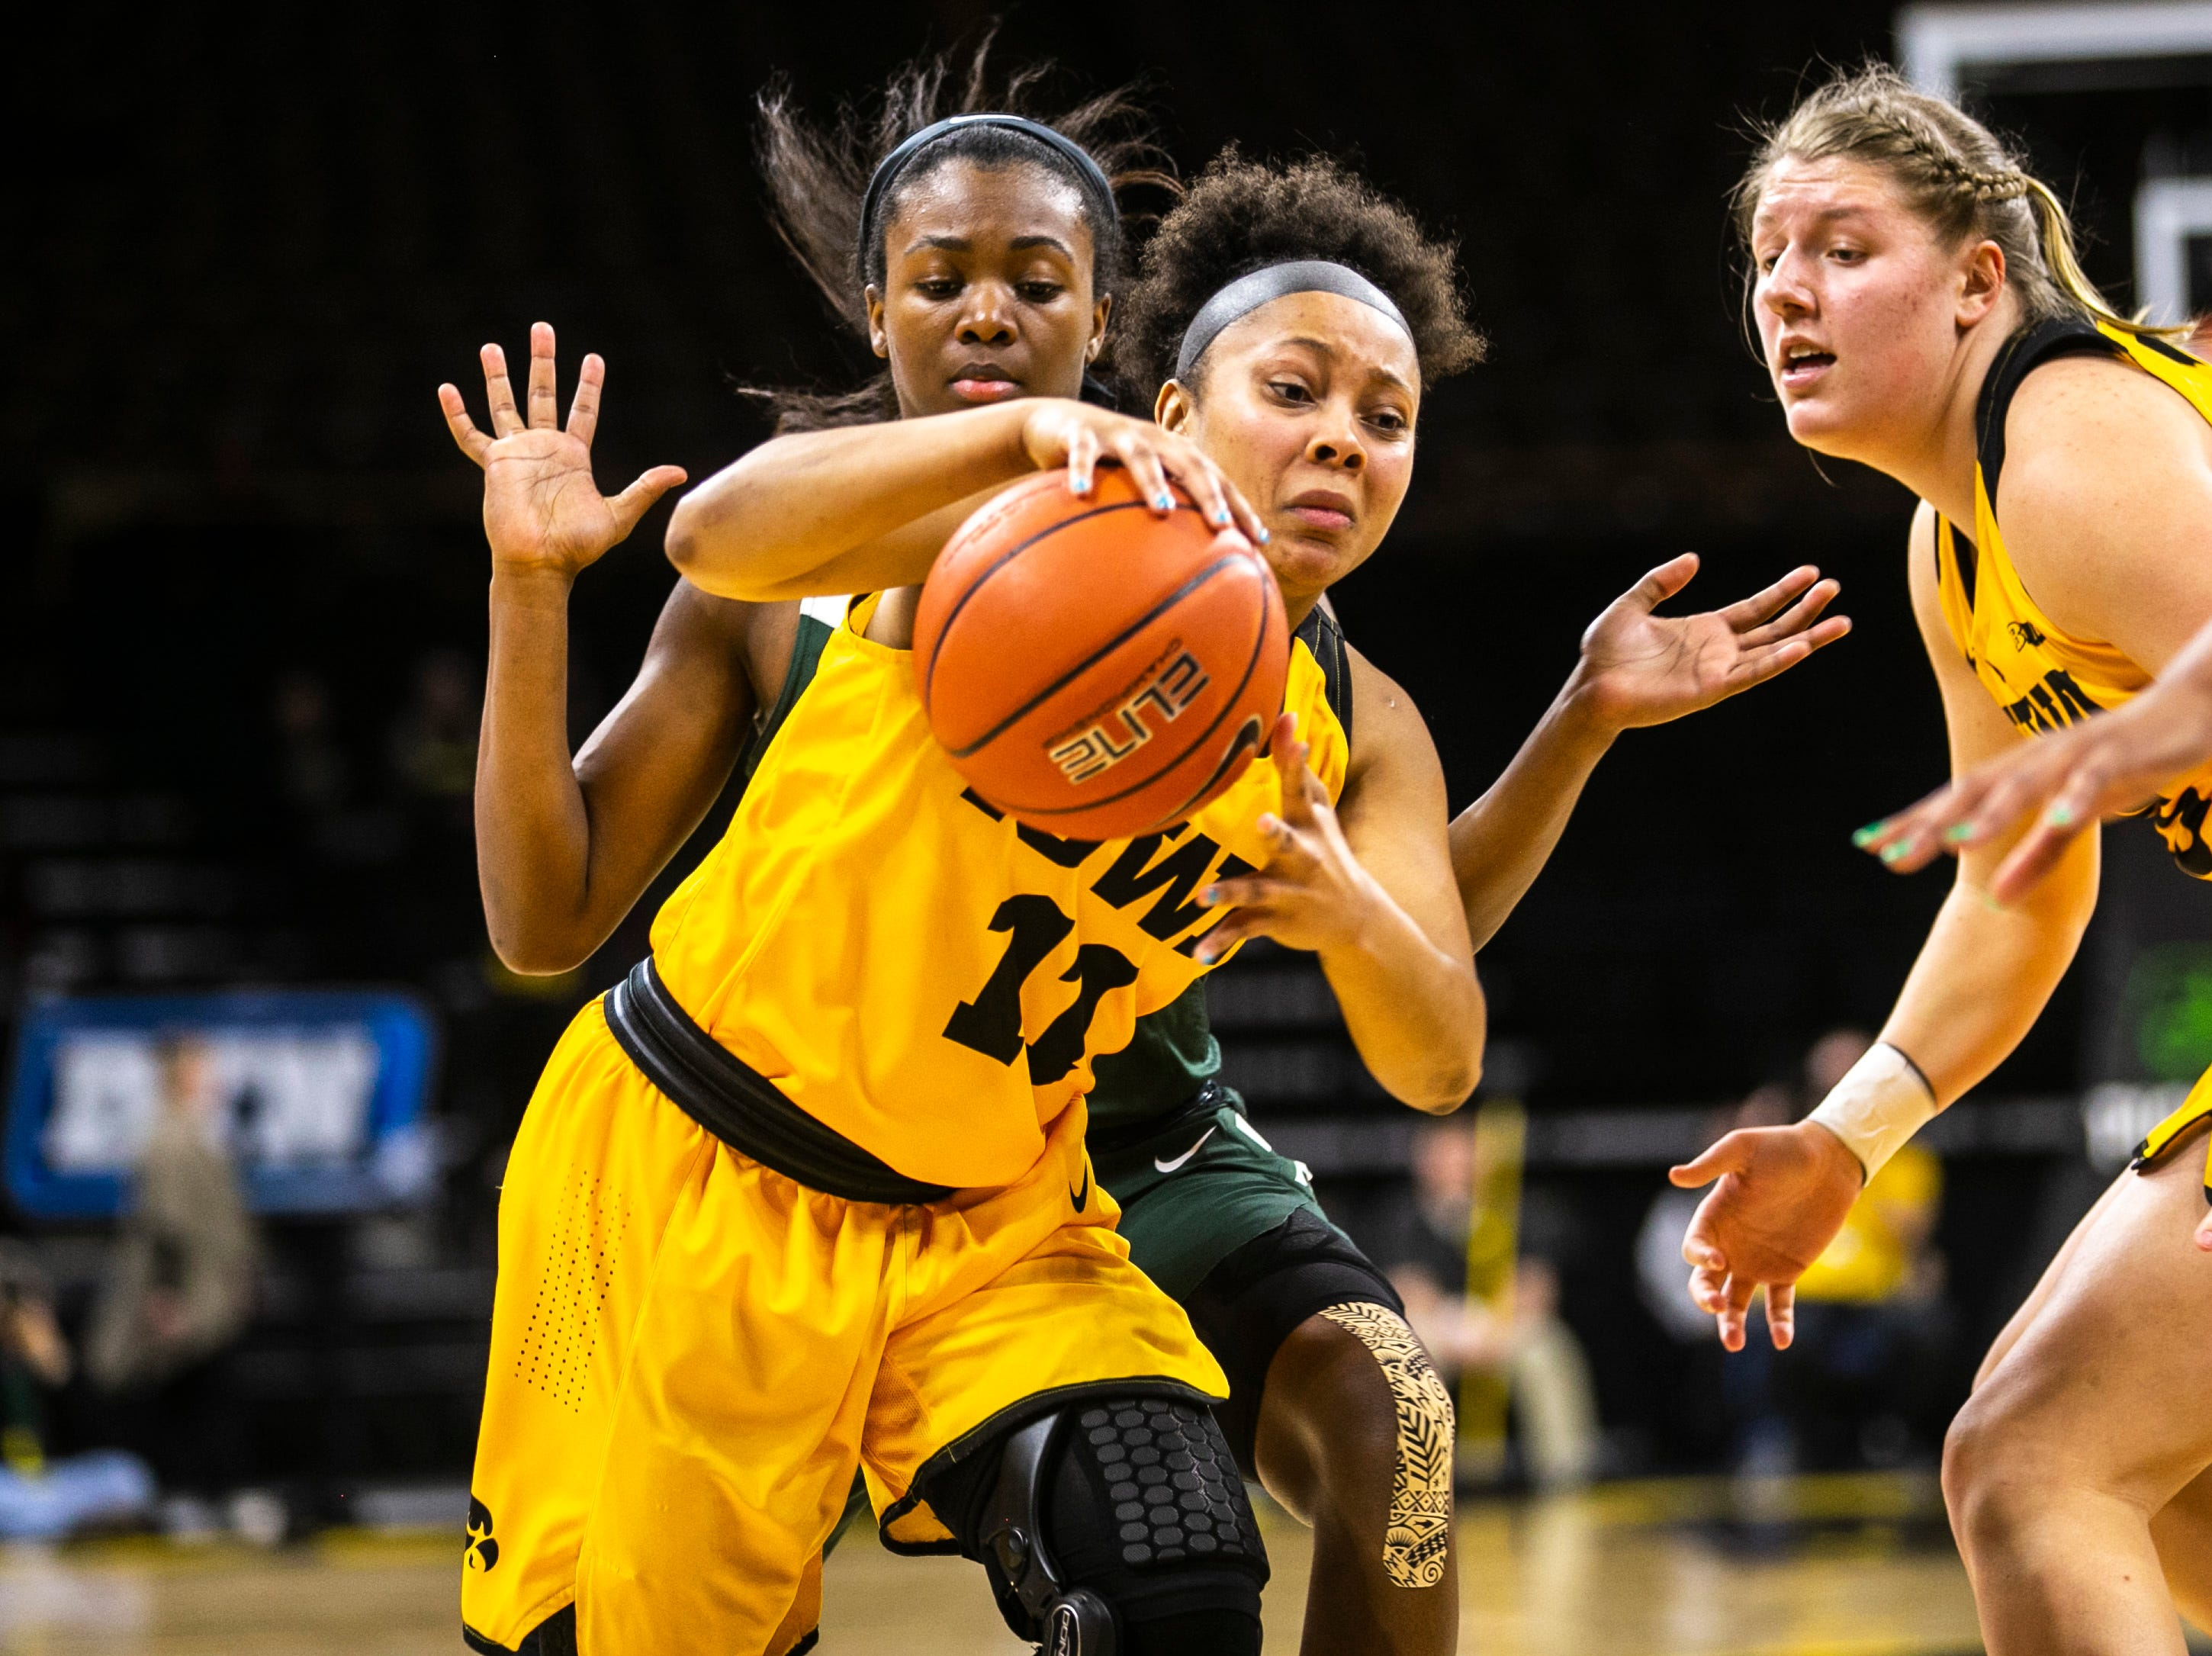 Iowa guard Tania Davis (11) drives to the hoop while Michigan State center Nia Clouden (24) defends during a NCAA Big Ten Conference women's basketball game on Thursday, Feb. 7, 2019 at Carver-Hawkeye Arena in Iowa City, Iowa.